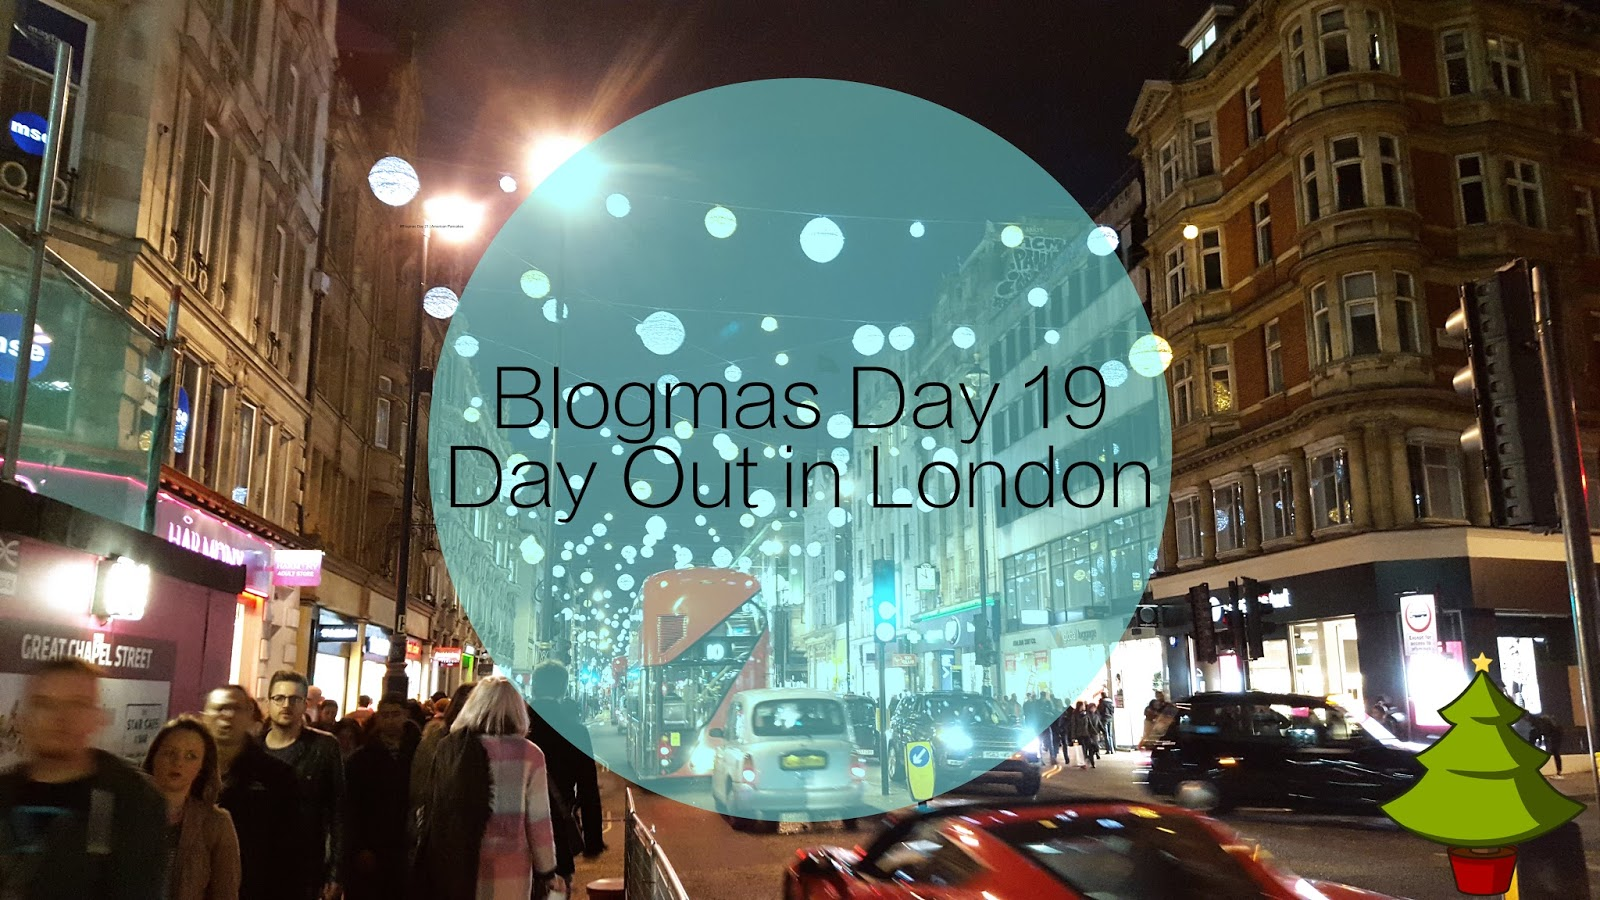 #Blogmas Day 19 | Day Out in London